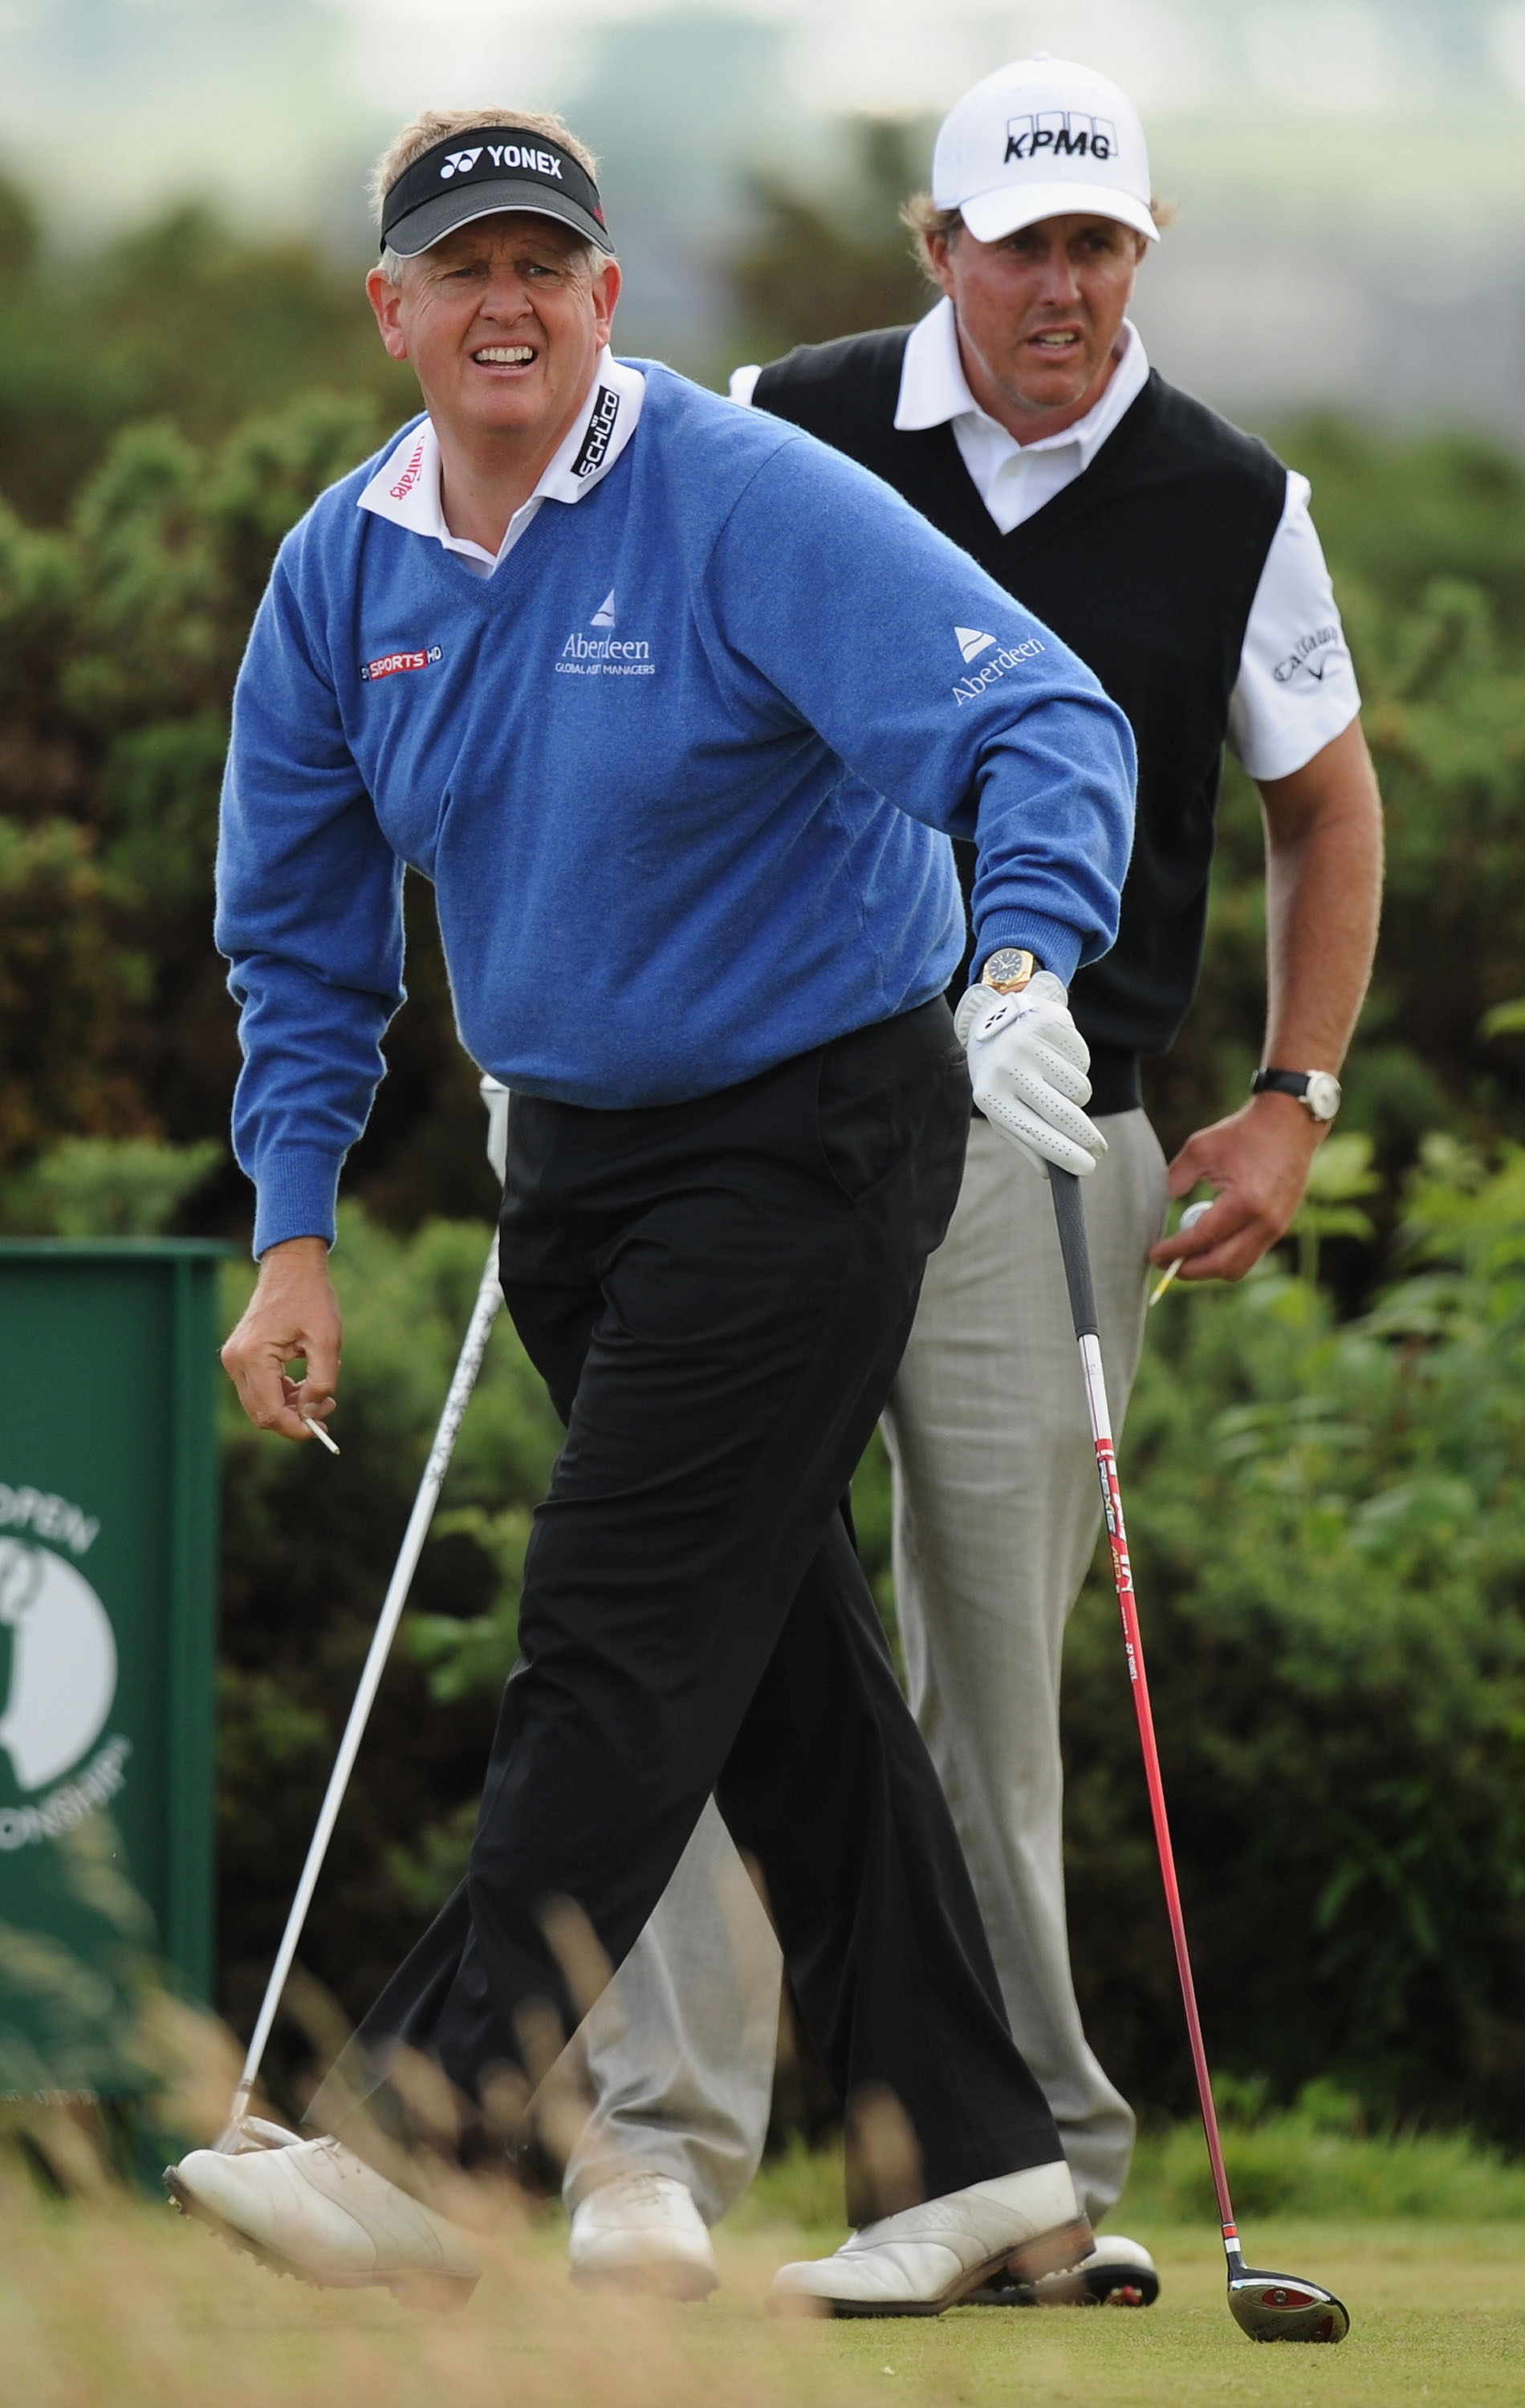 Colin Montgomerie of Scotland (L) watches his tee shot on the tenth hole as Phil Mickelson of the USA looks on during the second round of the 139th Open Championship on the Old Course, St Andrews on July 16, 2010 in St Andrews, Scotland.